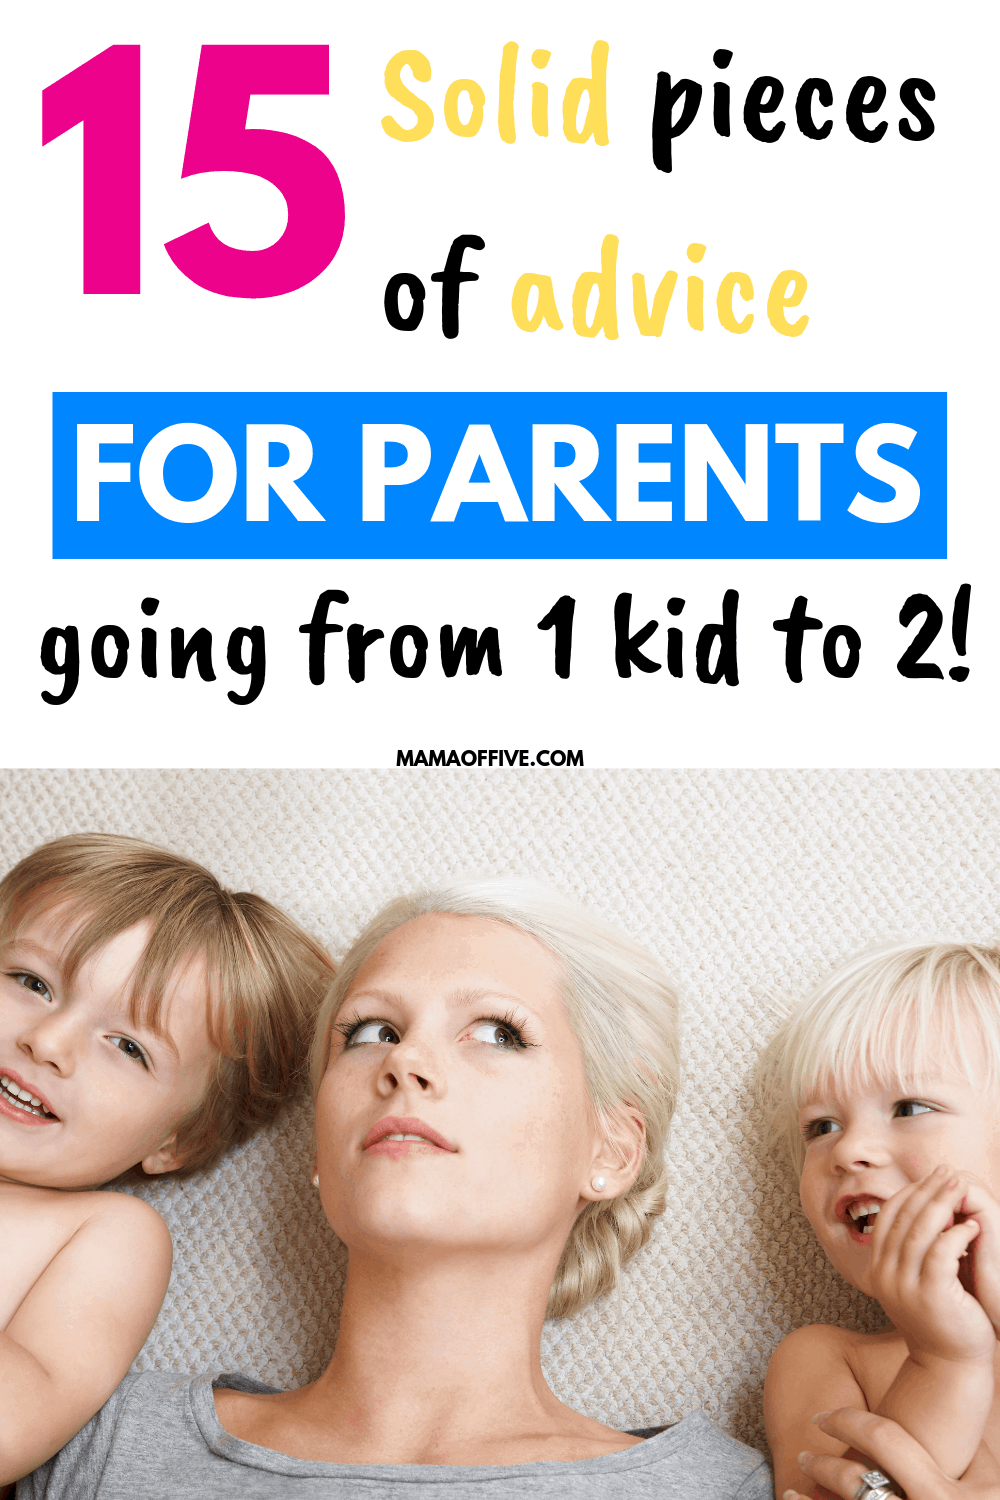 15 ways to keep your sanity when transitioning to two kids    15 Tips for Transitioning to 2 Kids15 Solid Pieces Of Advice For Parents Going From One Kid To Two,    The Surprising Truth About the Transition to Two Kids